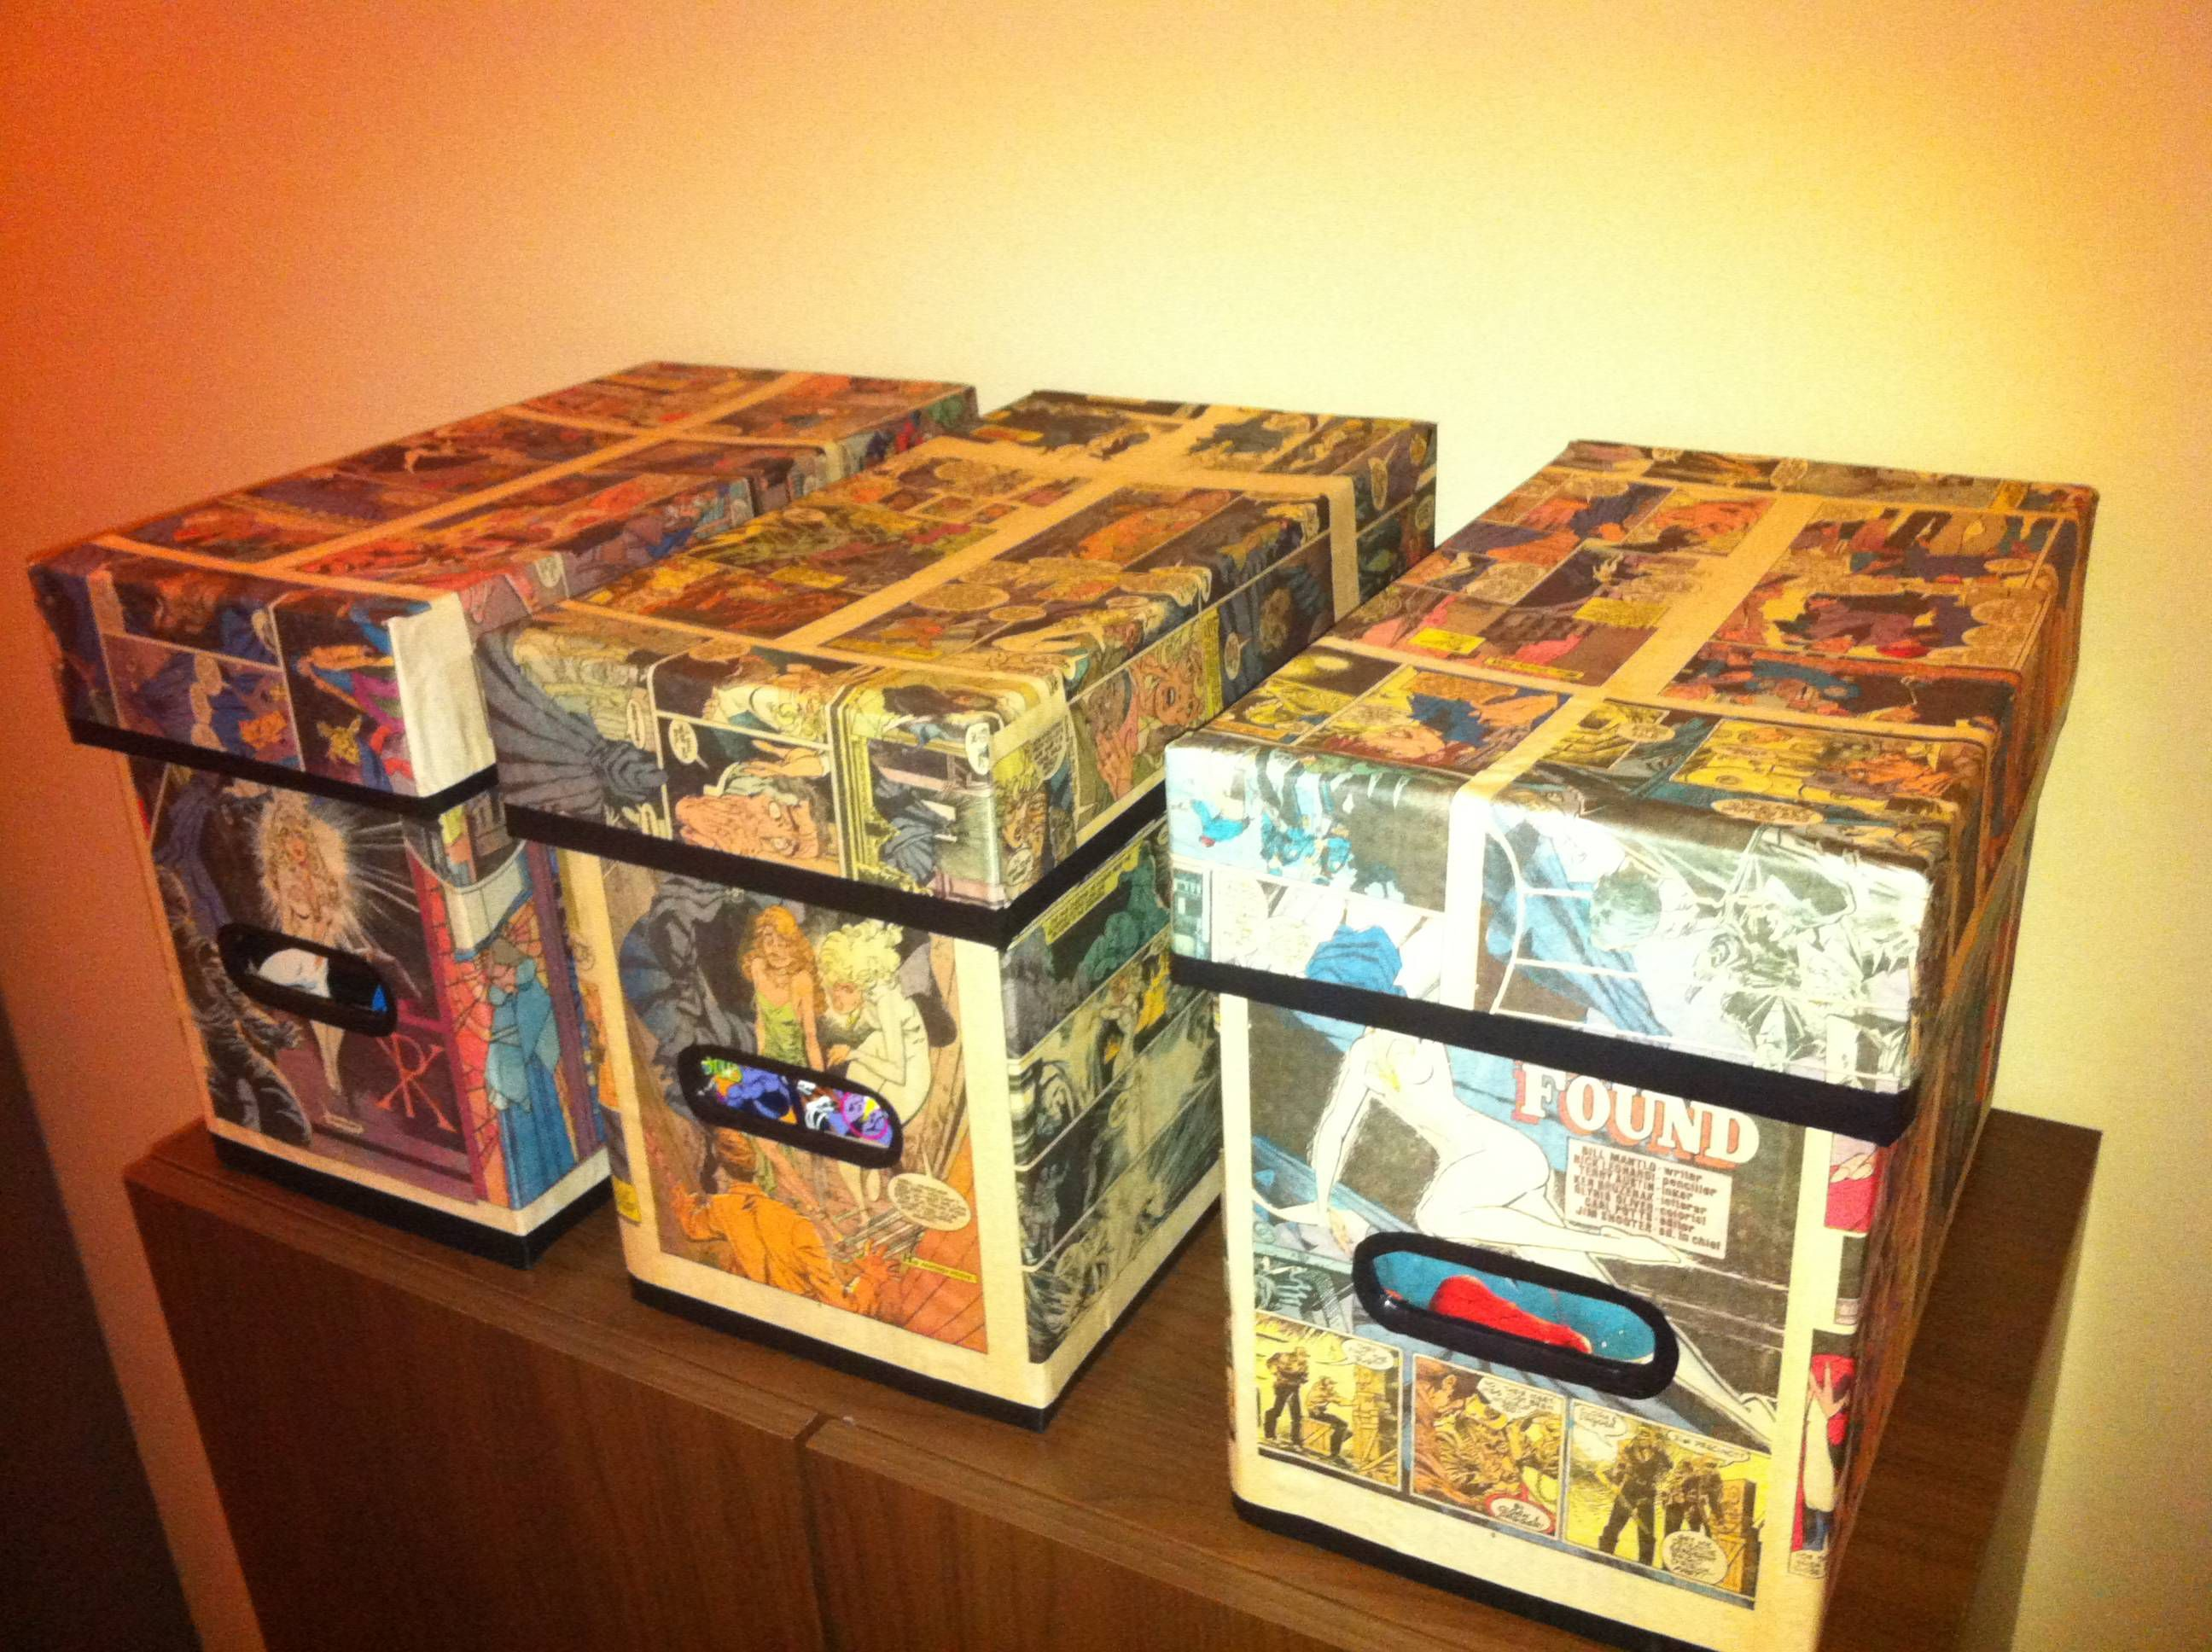 This would be a nice way to display all R's comic book boxes currently  crowding the closet.